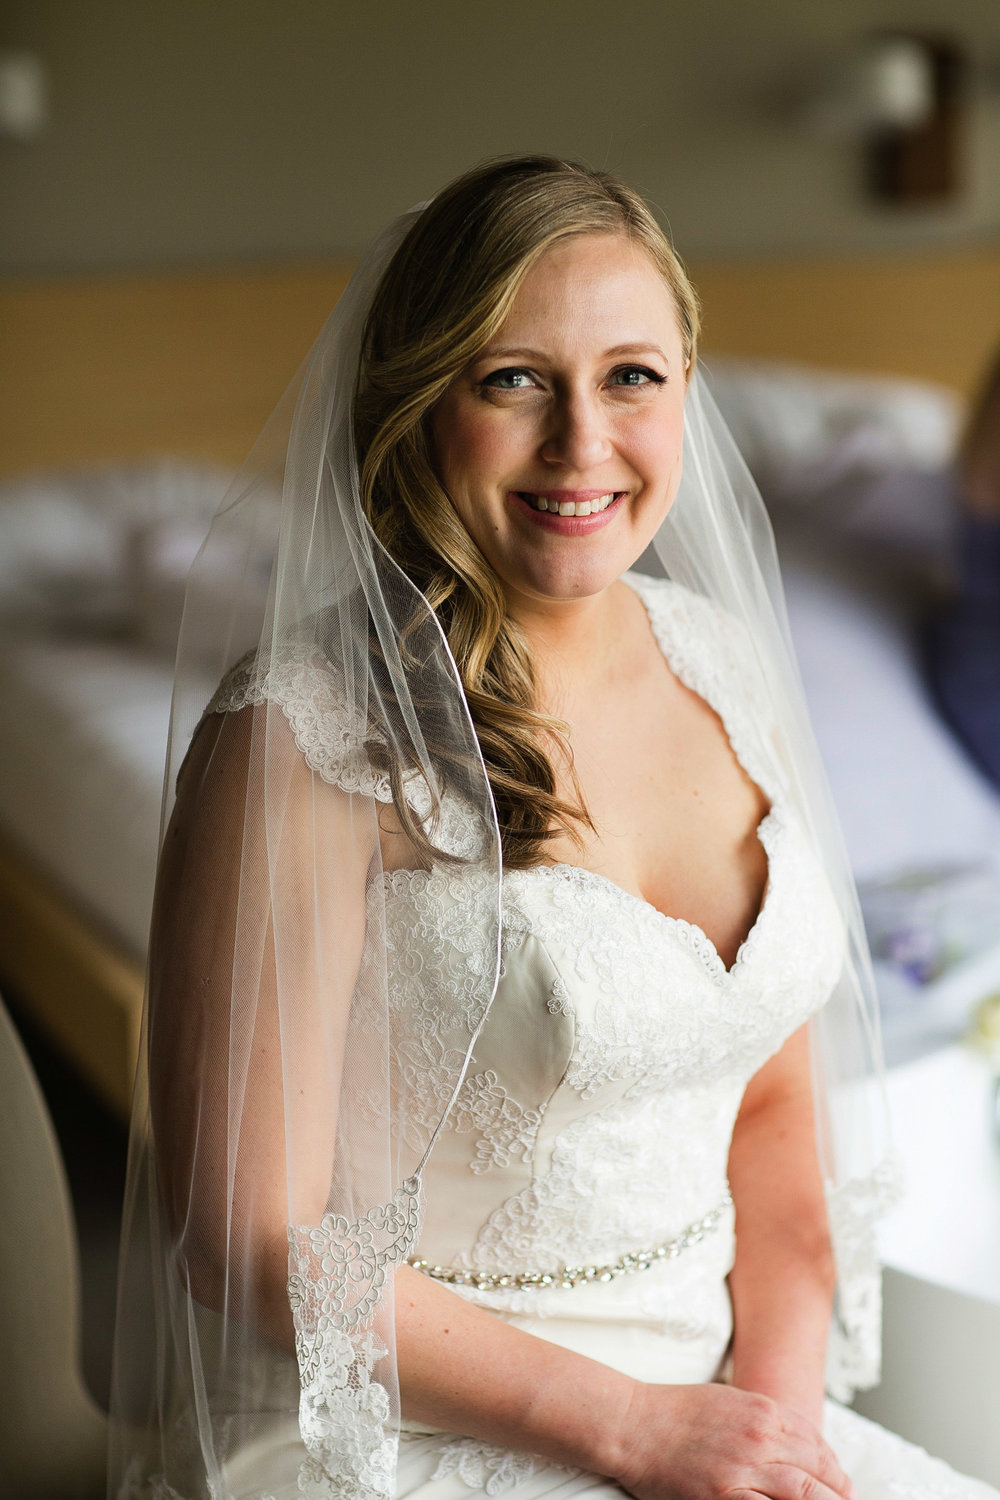 Beautiful, happy bride with Bruce Plotkin Photography.